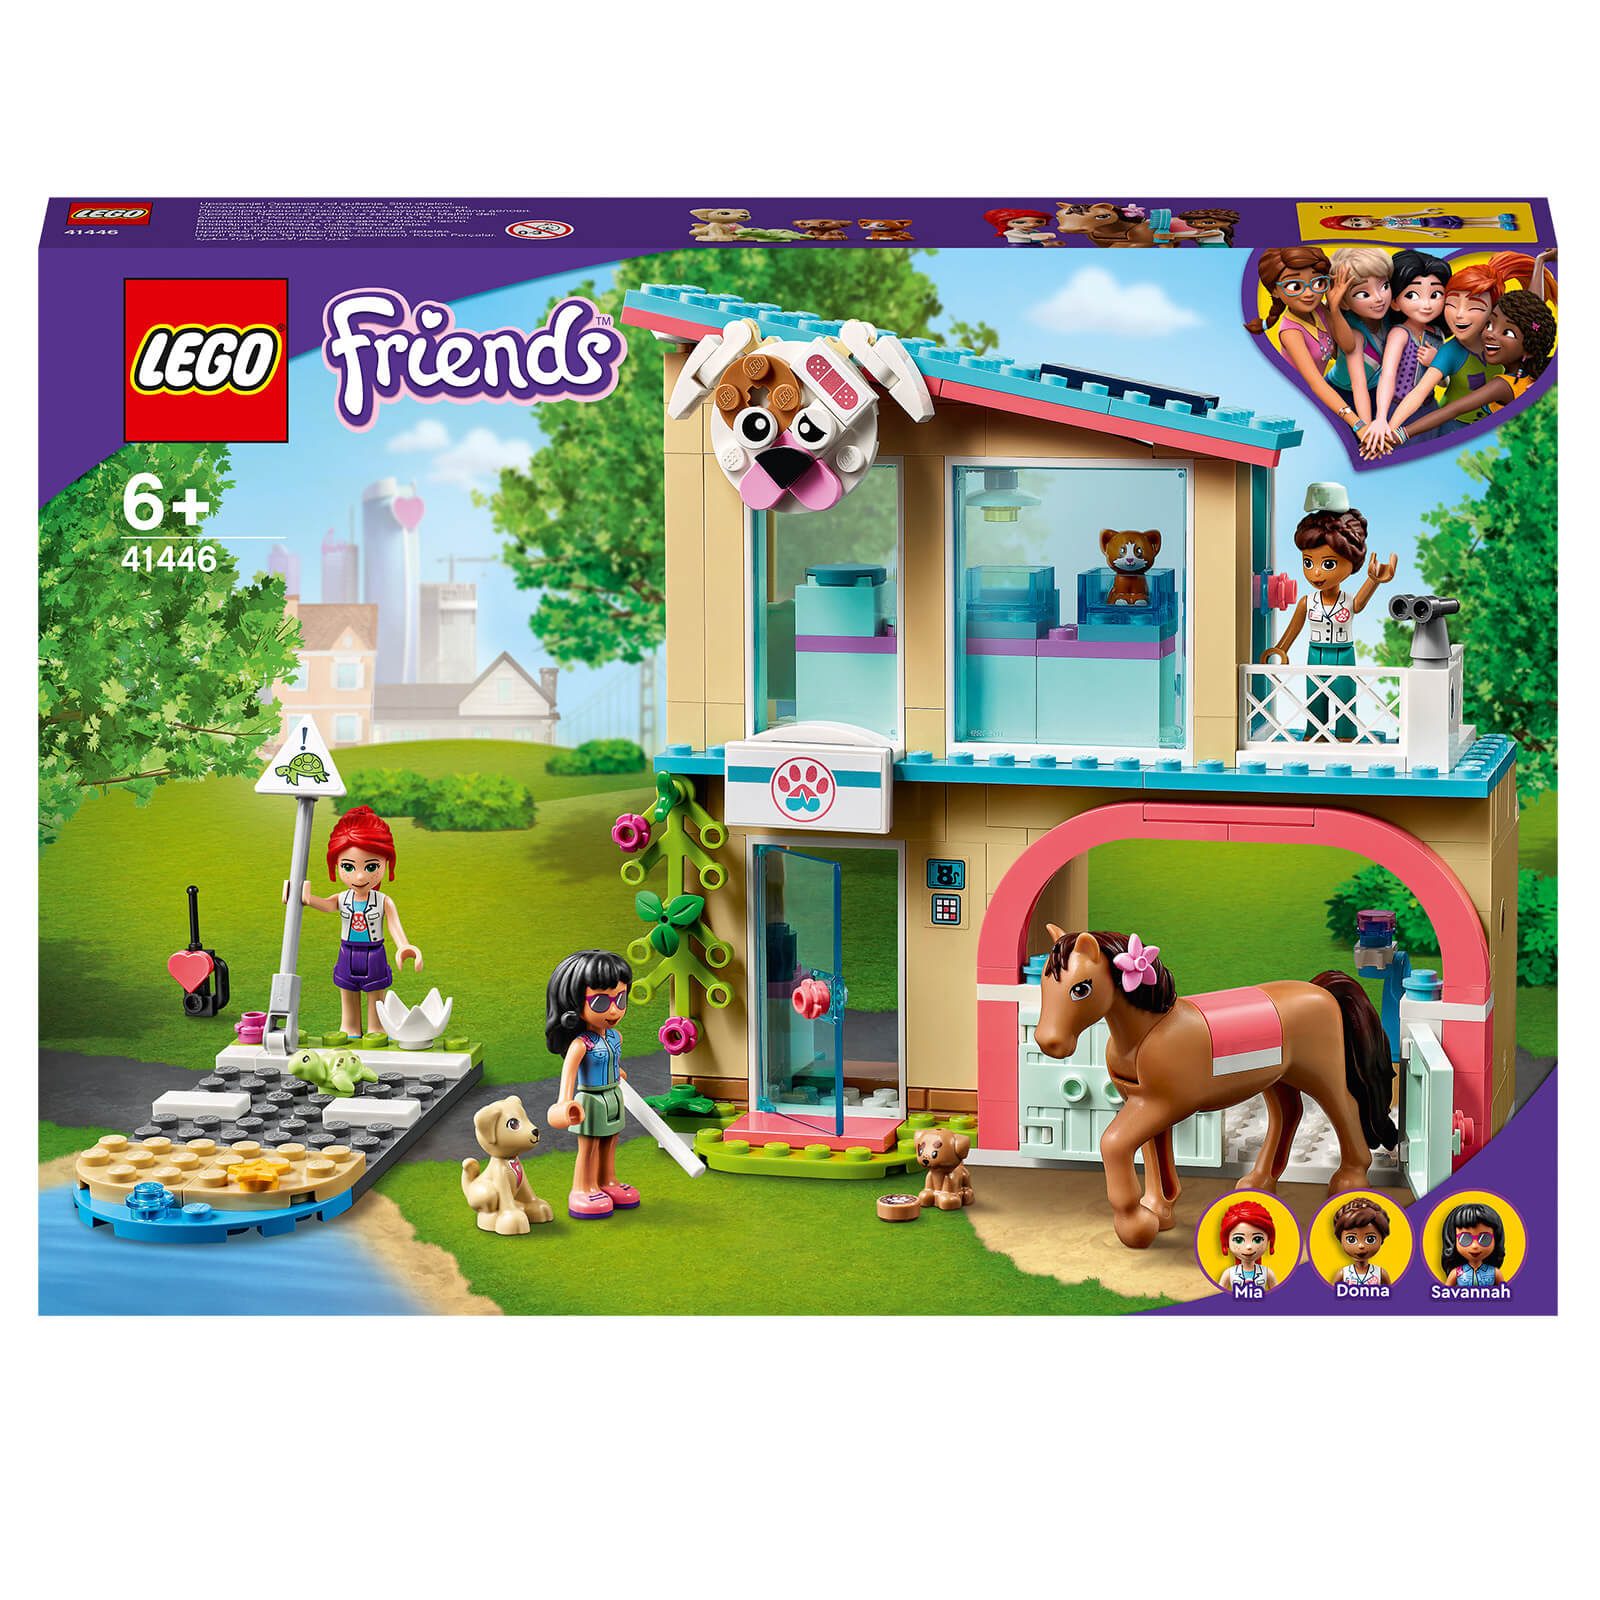 Image of Lego Friends Heartlake City Vet Clinic Construction Set